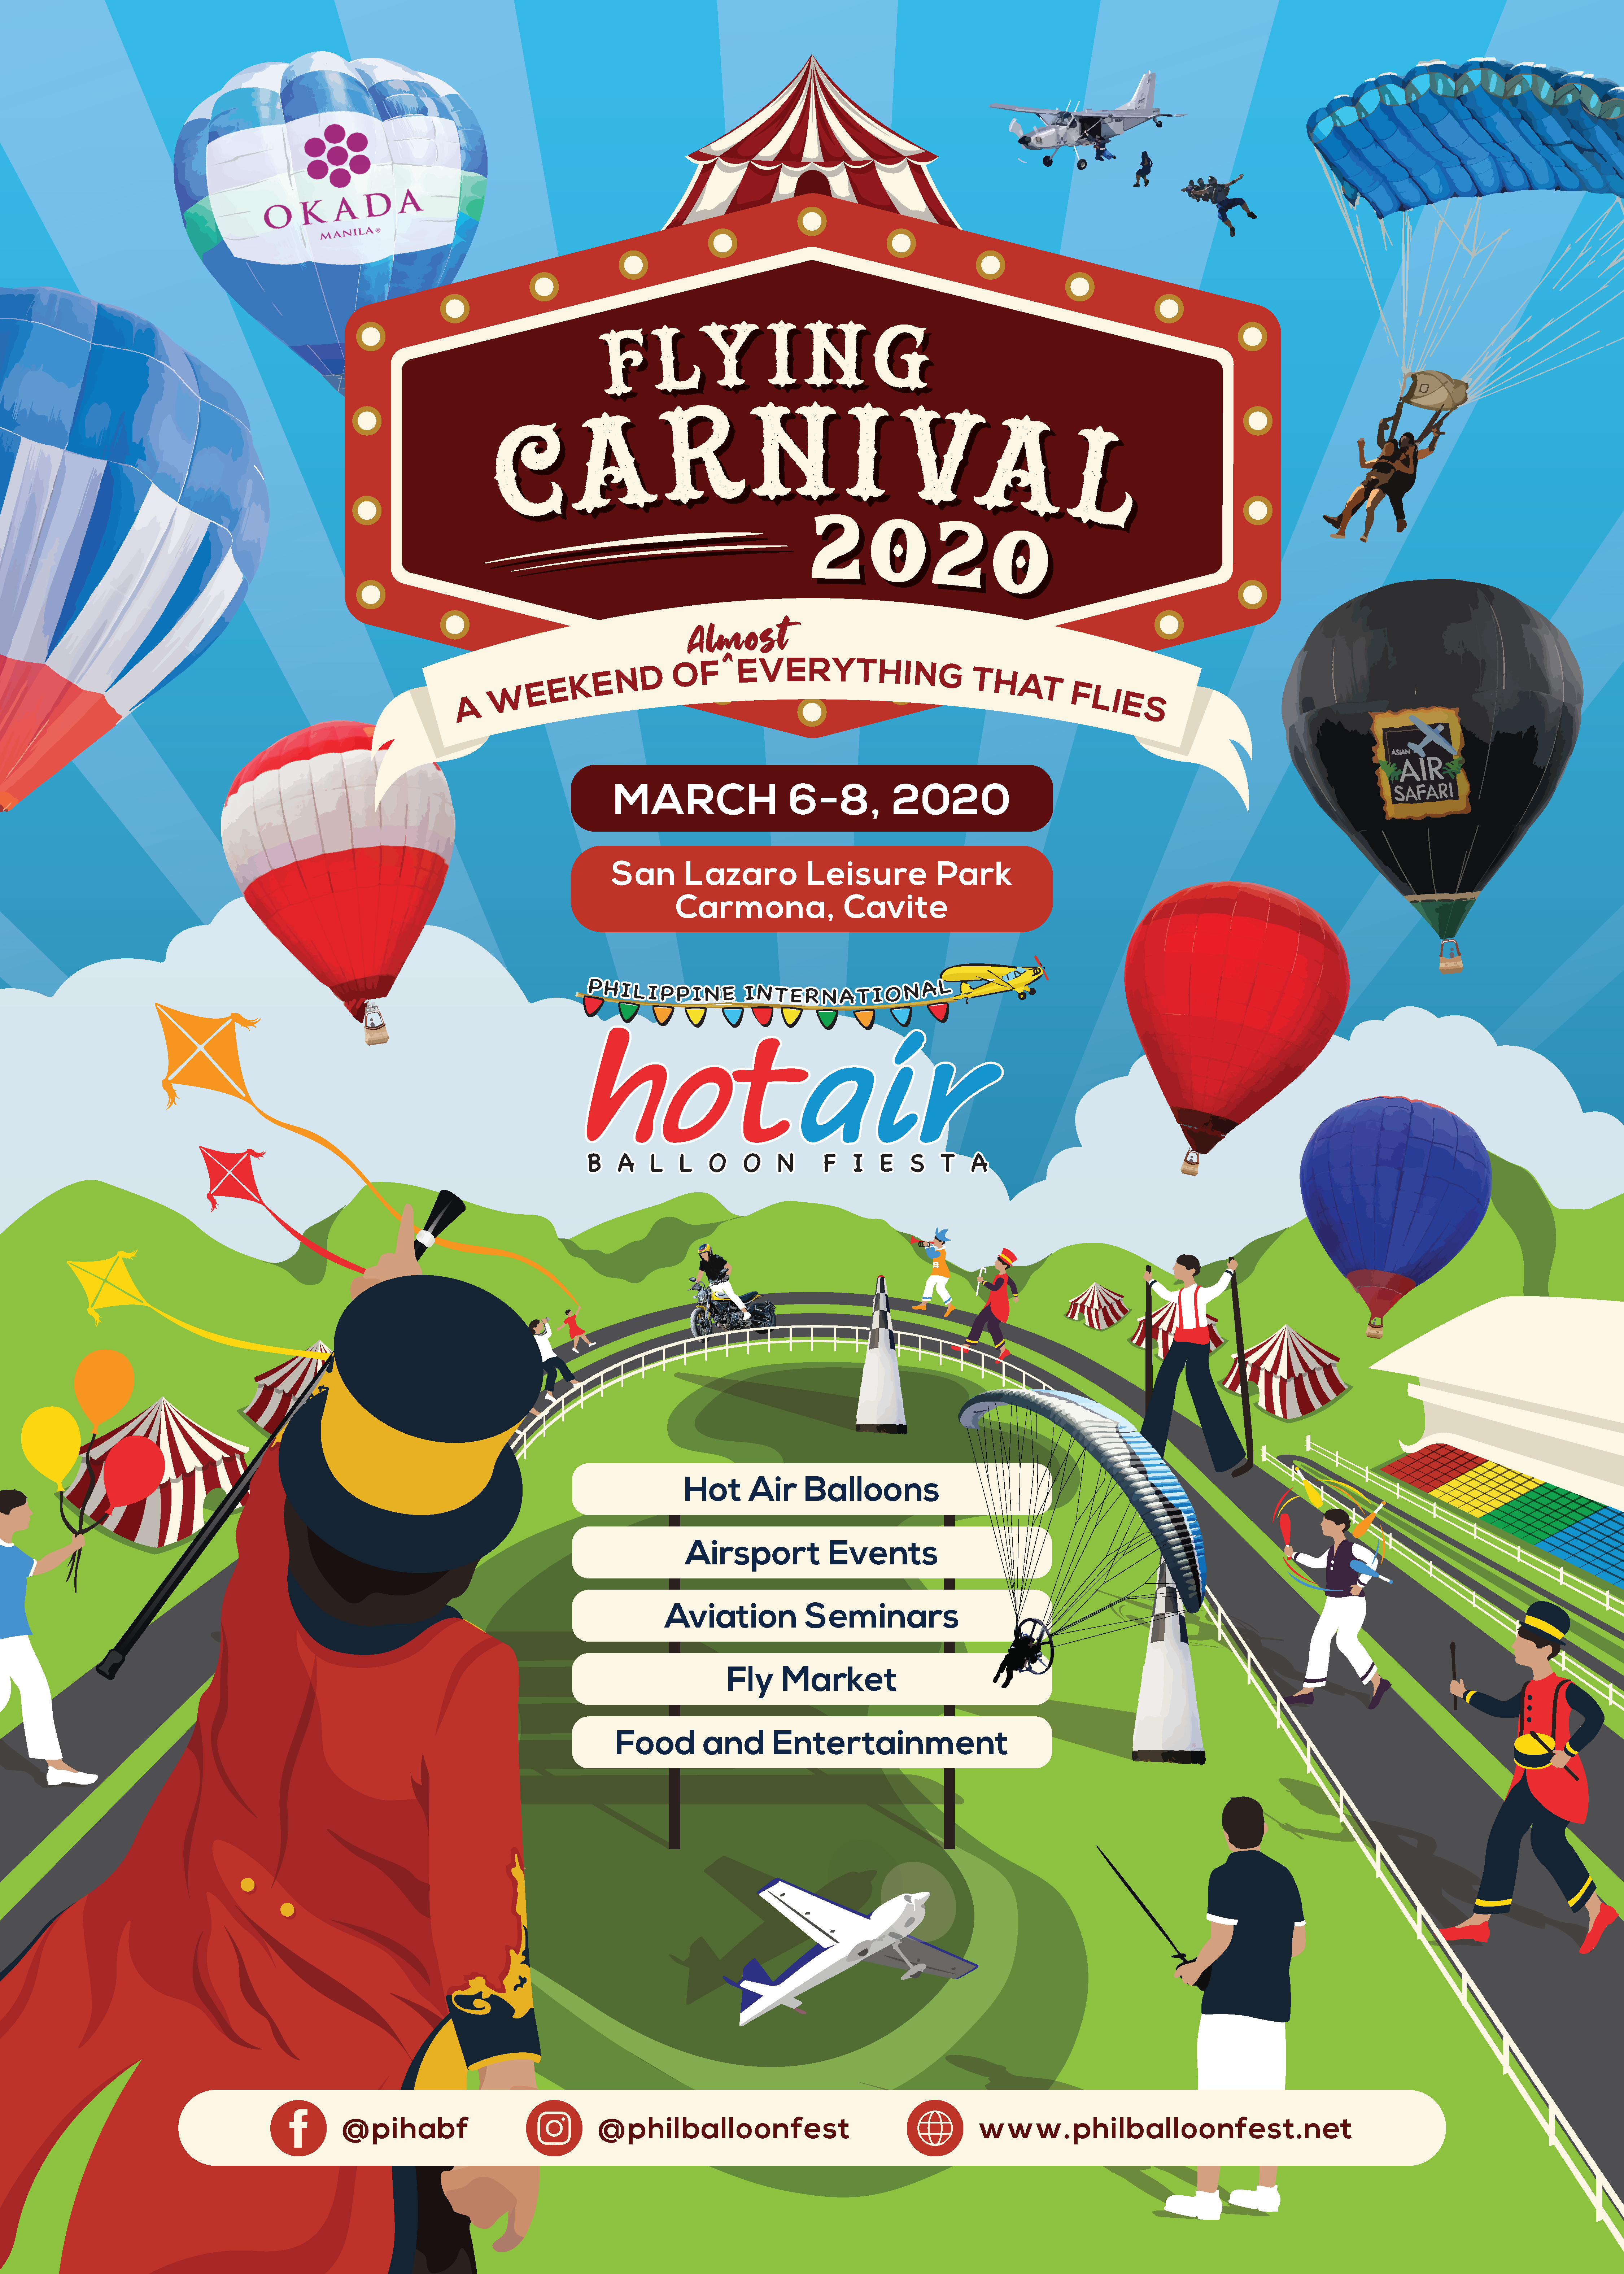 Philippine Hot Air Balloon: The Flying Carnival 2020